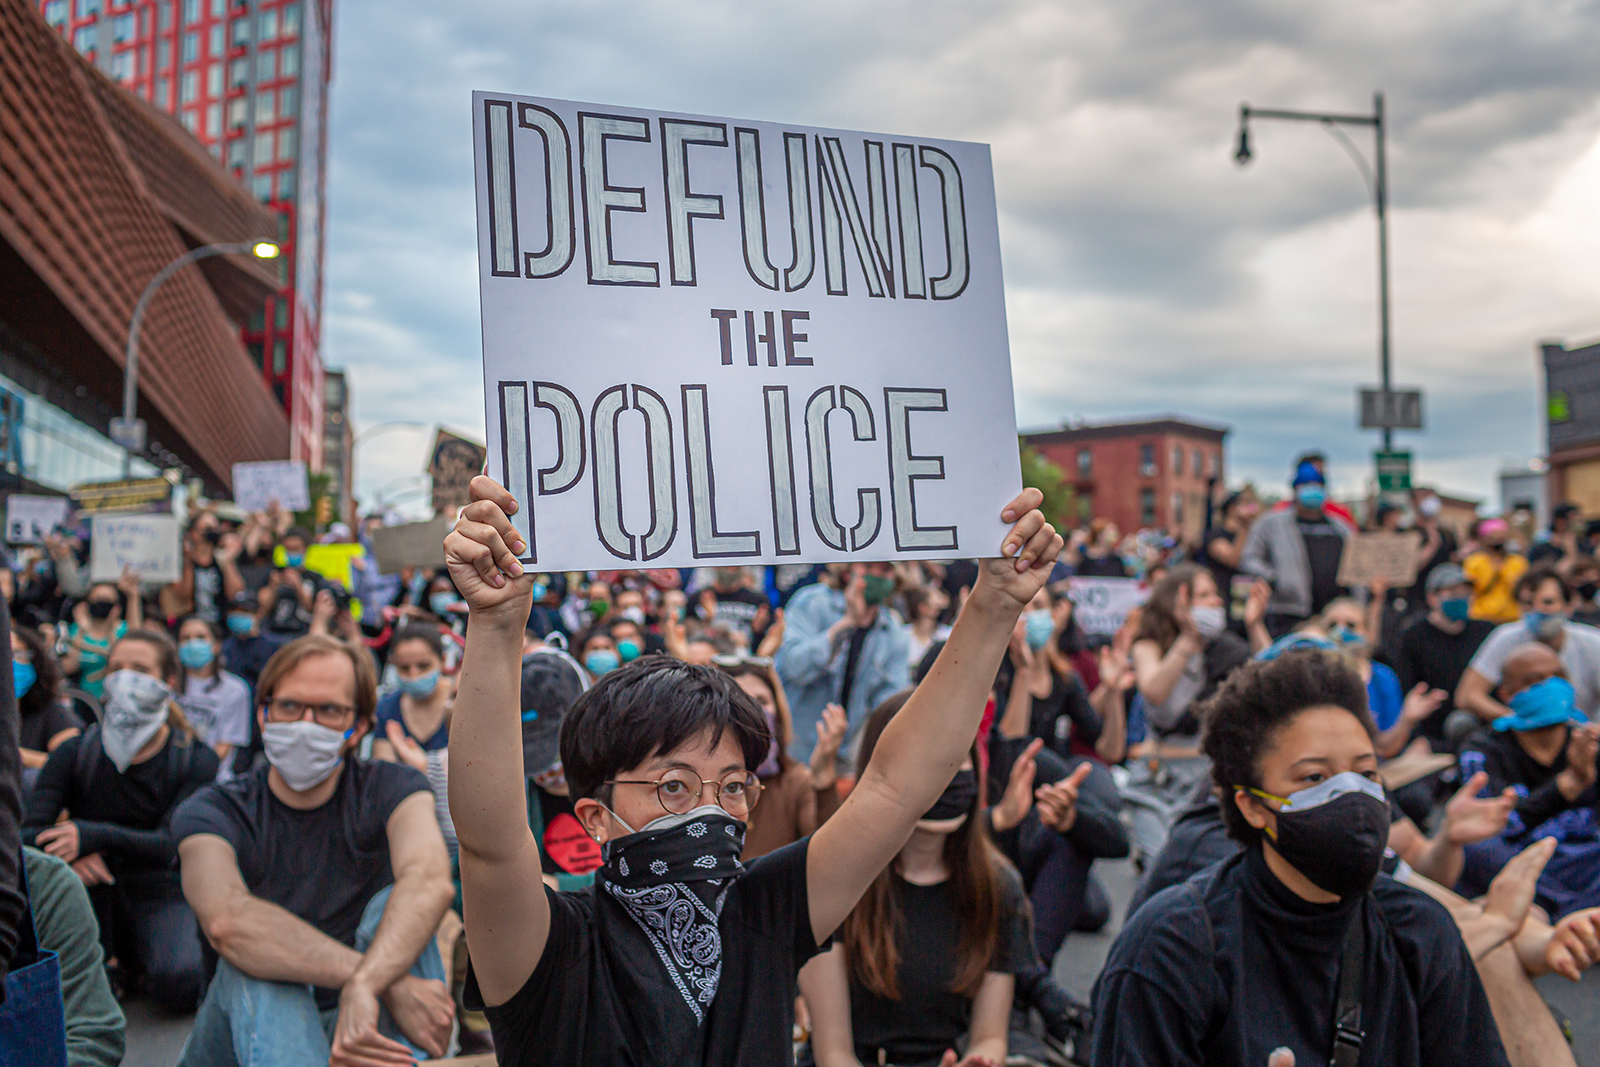 Crime is surging in US cities. Some say defunding the police will actually make it fall